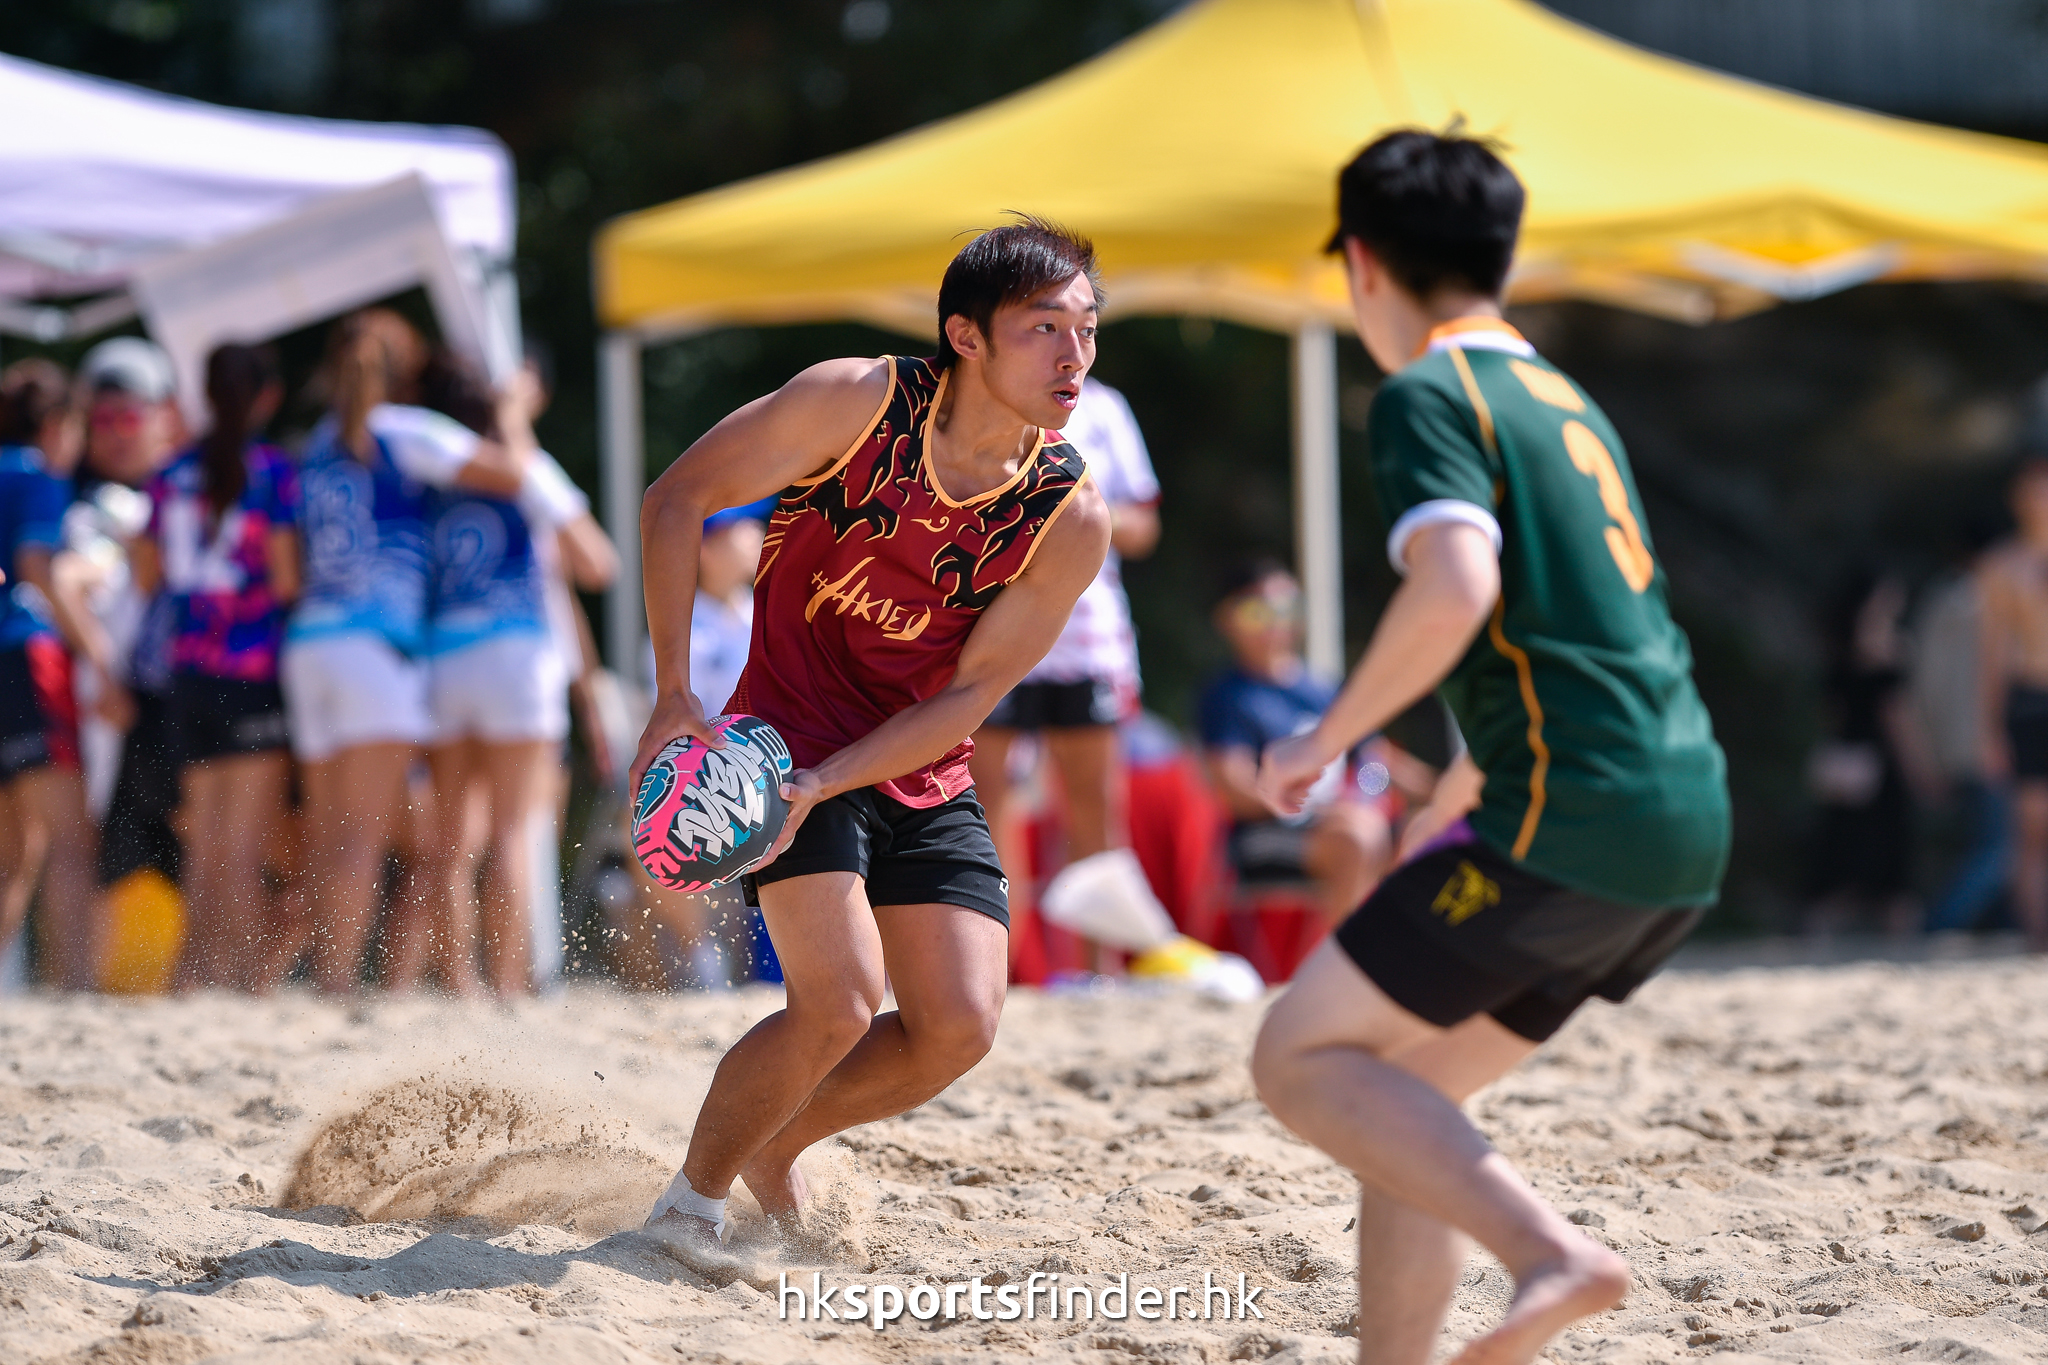 Her_GoldCoastTertiaryBeachRugby_16-11-12 11.16.22_000347.jpg